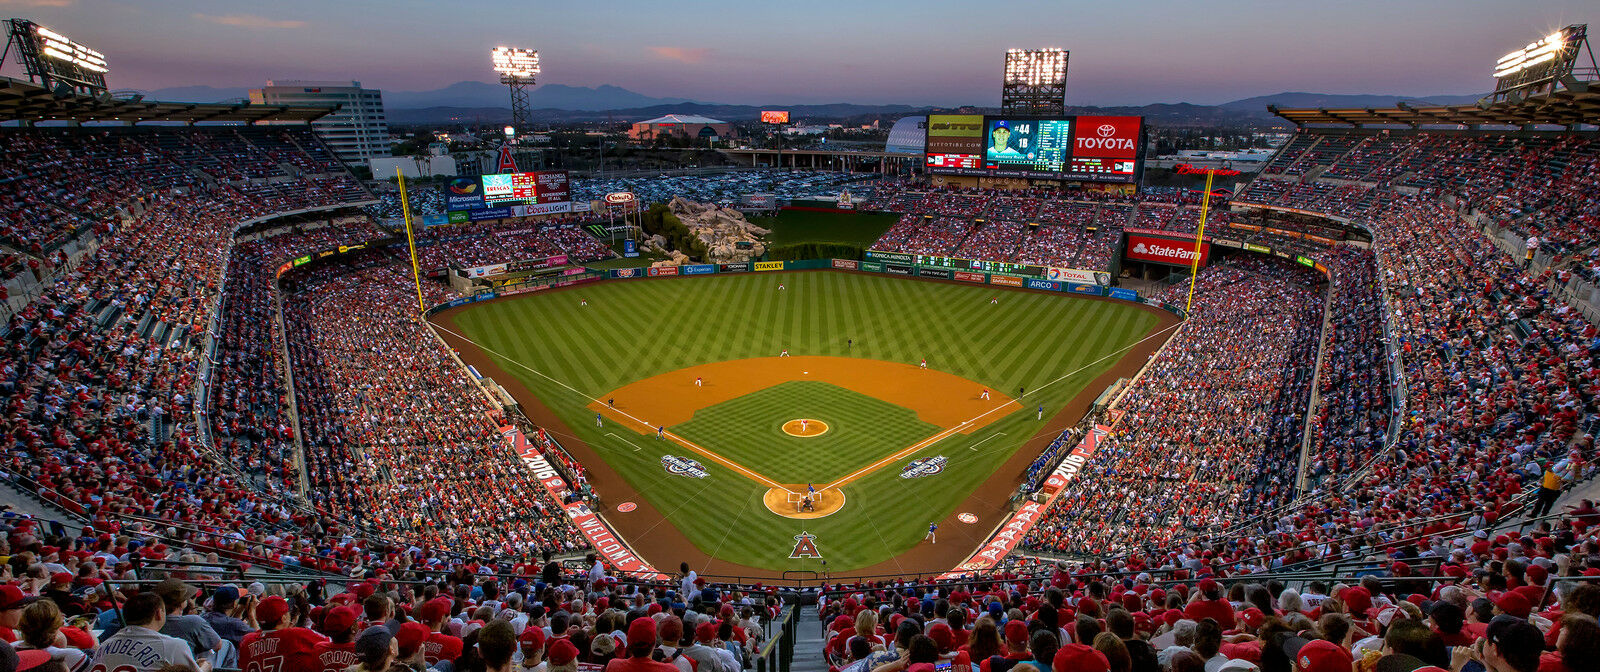 Texas Rangers at Los Angeles Angels Tickets (Trout MVP Season Bobblehead)